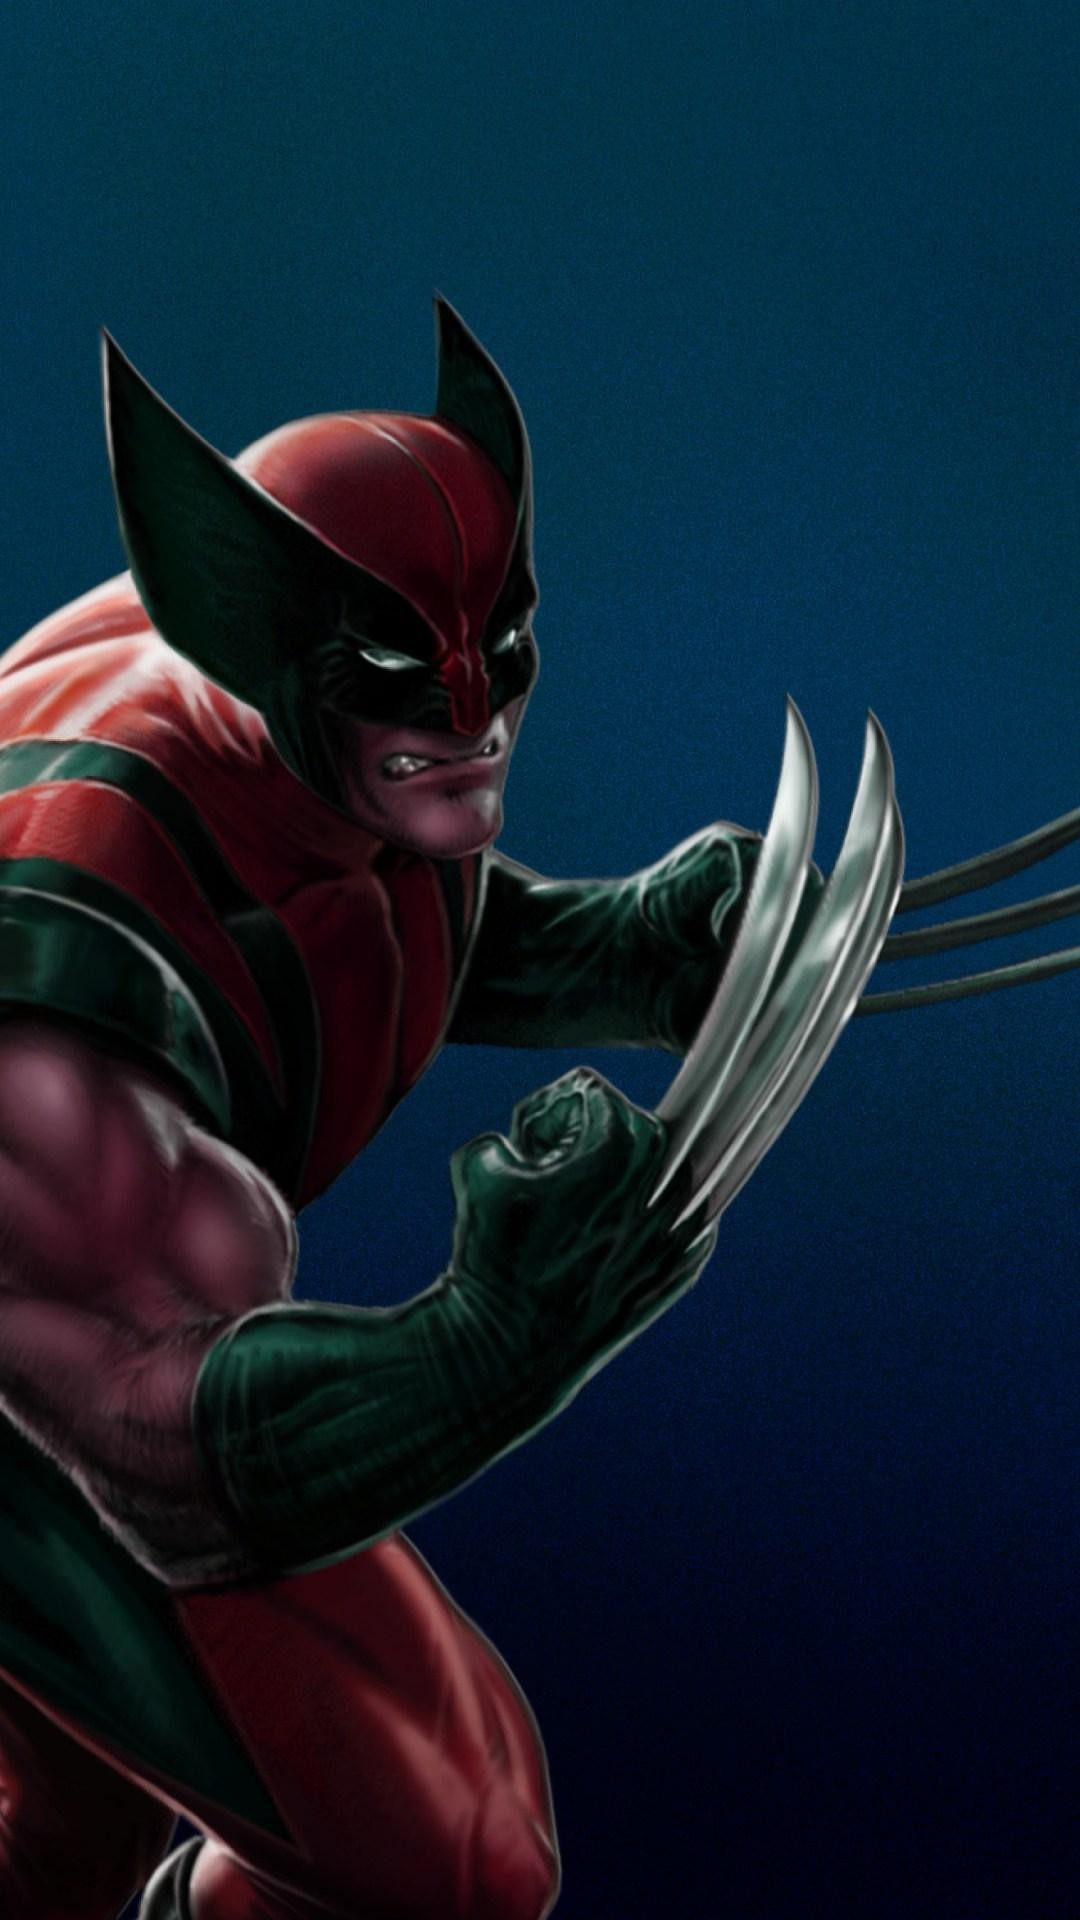 wallpaper.wiki-Download-Marvel-Wallpaper-for-Iphone-Free-